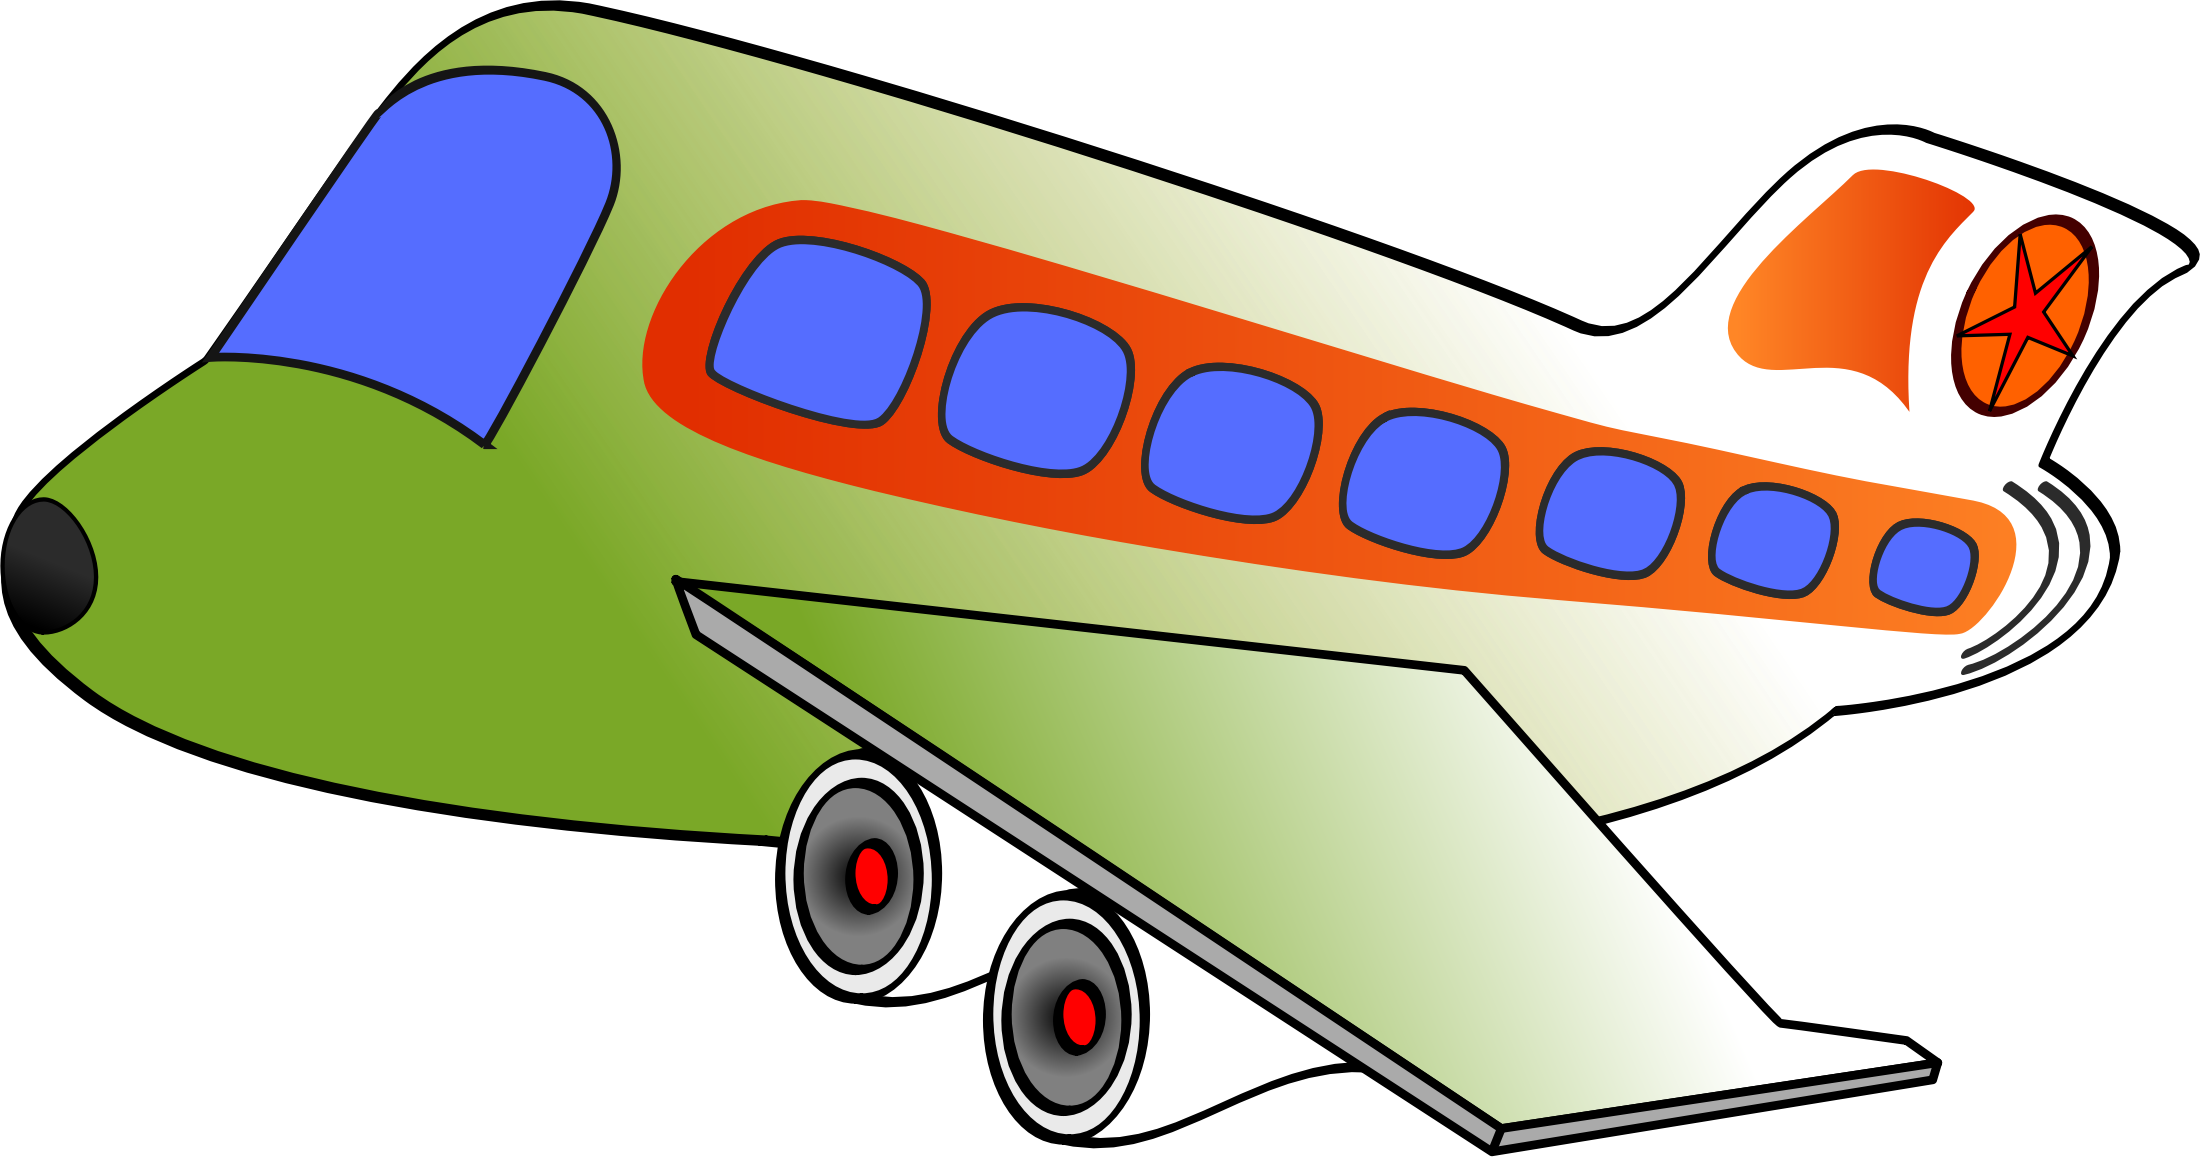 Airplane boeing aircraft clip. Jet clipart line art